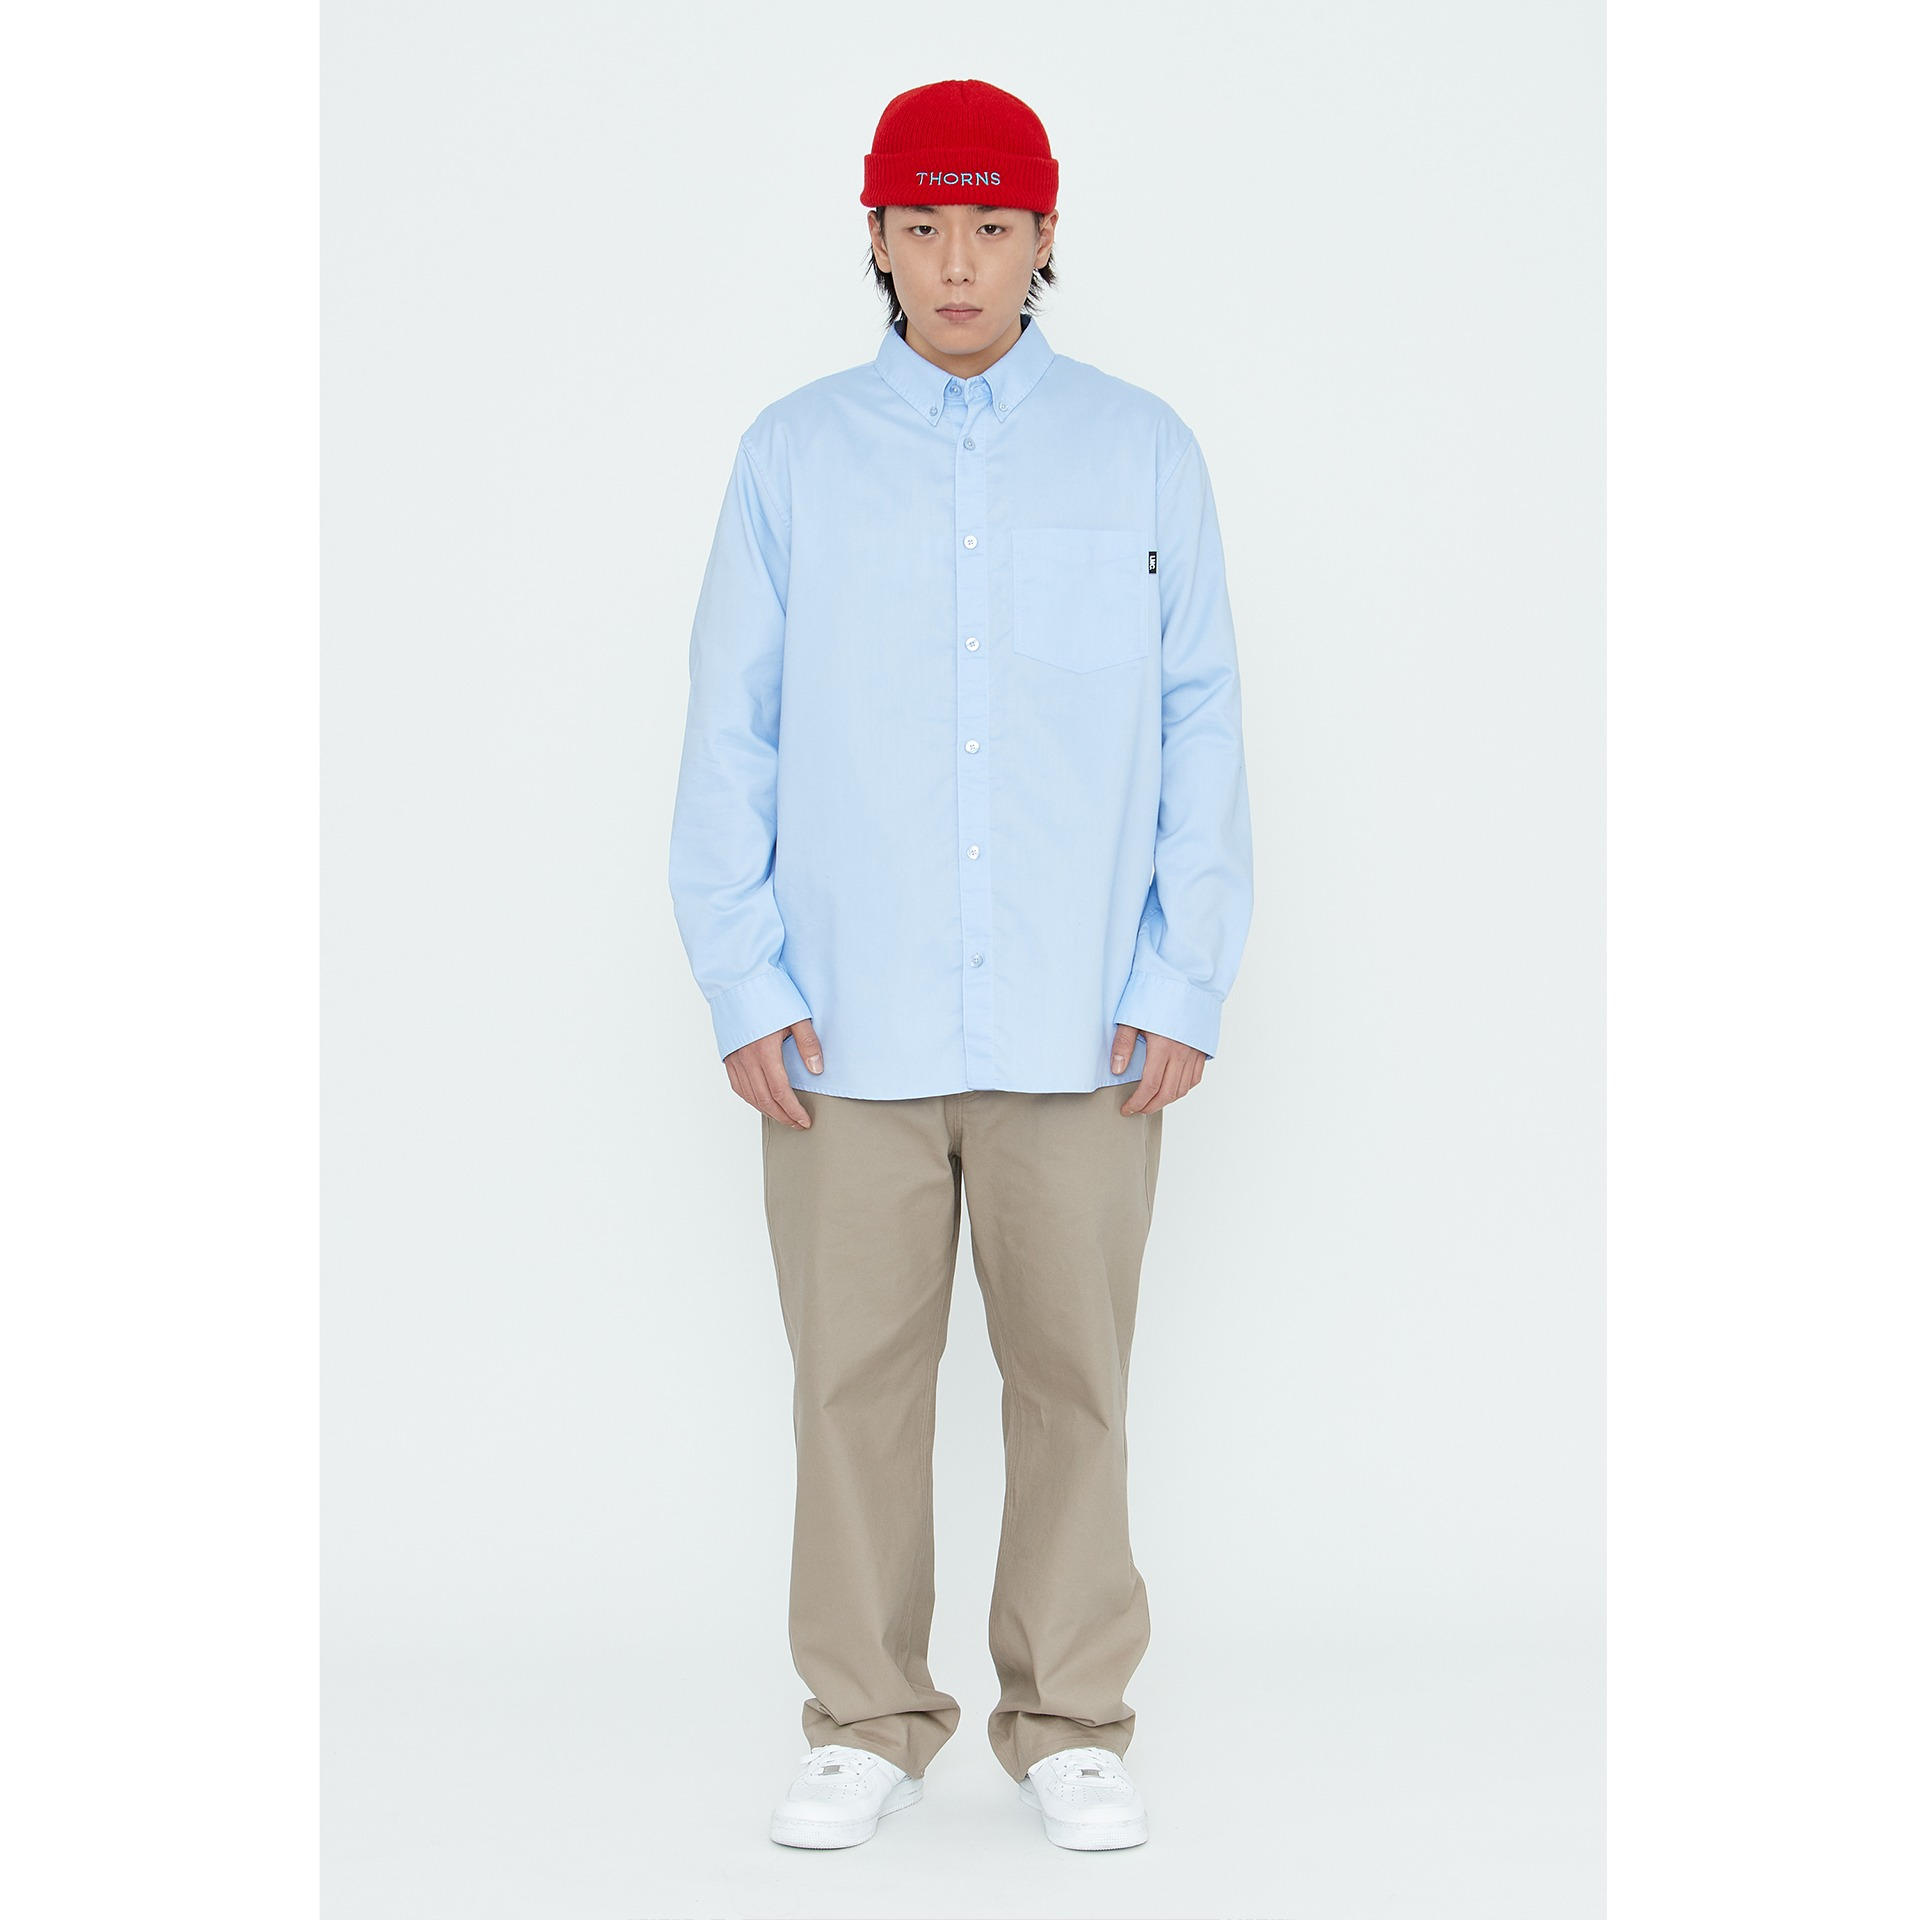 LMC OXFORD BASIC SHIRT blue